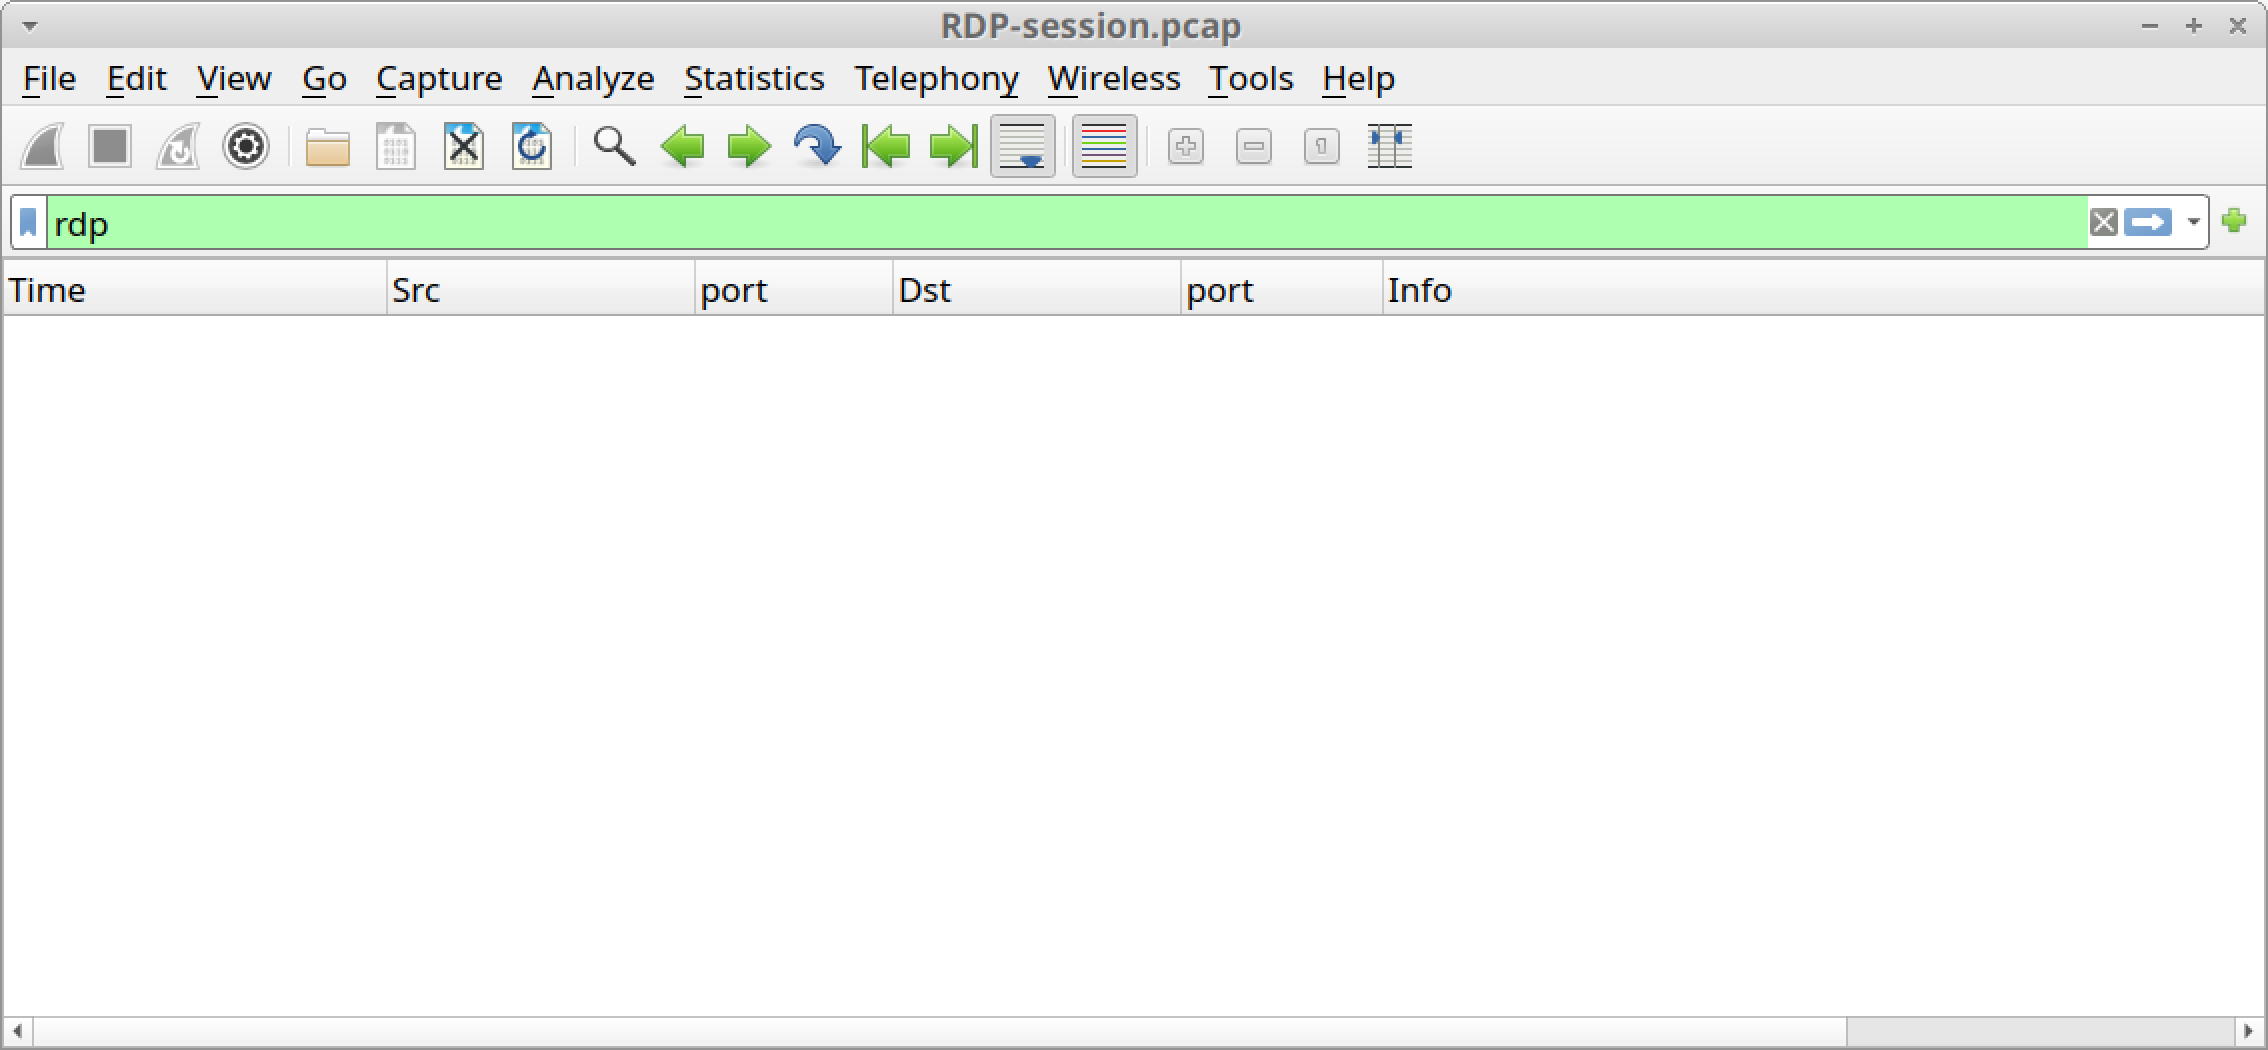 Because RDP traffic was encrypted, we see a blank column display, as shown, when filtering for RDP in our pcap.